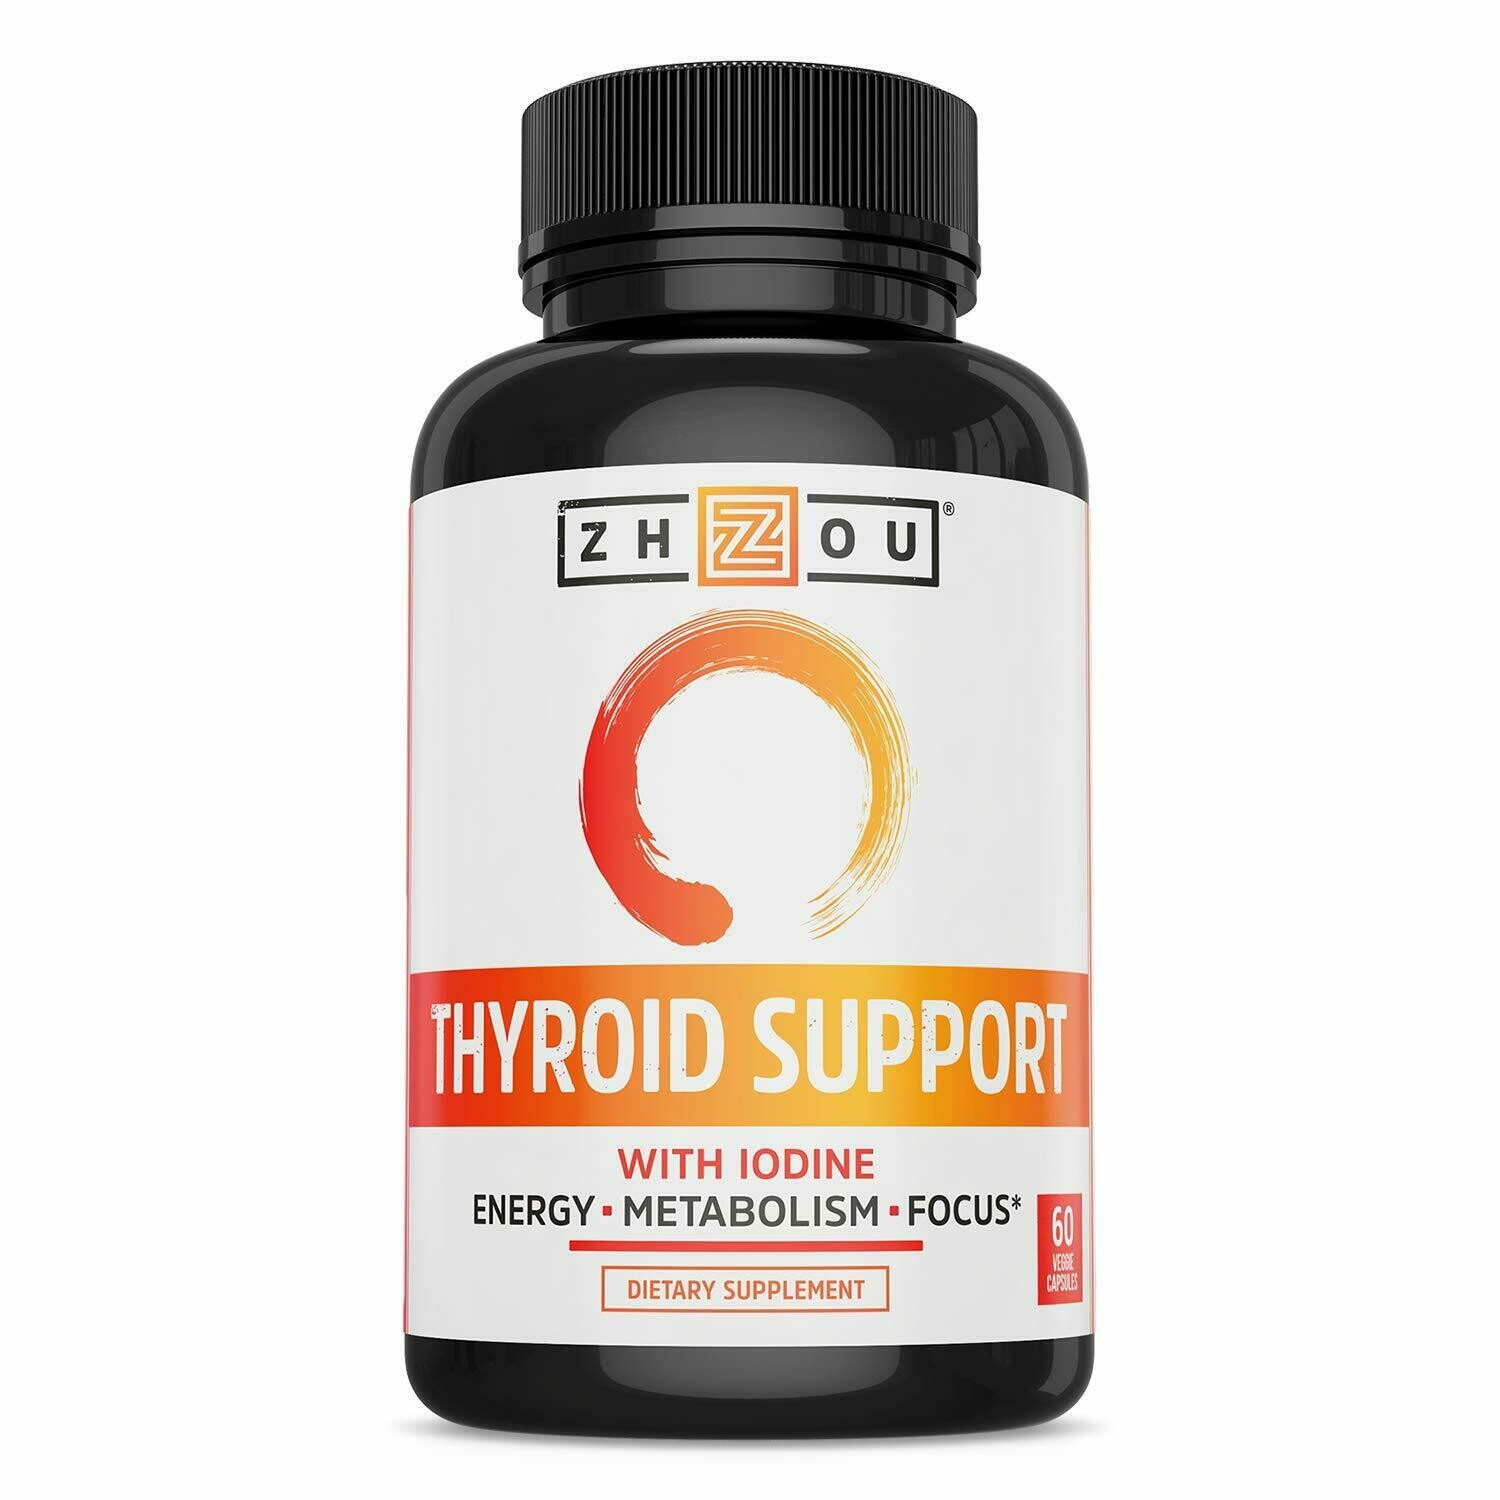 Zhou Nutrition Thyroid Support Complex with Iodine - Energy, Metabolism & Focus Formula - Vegetarian, Soy & Gluten Free